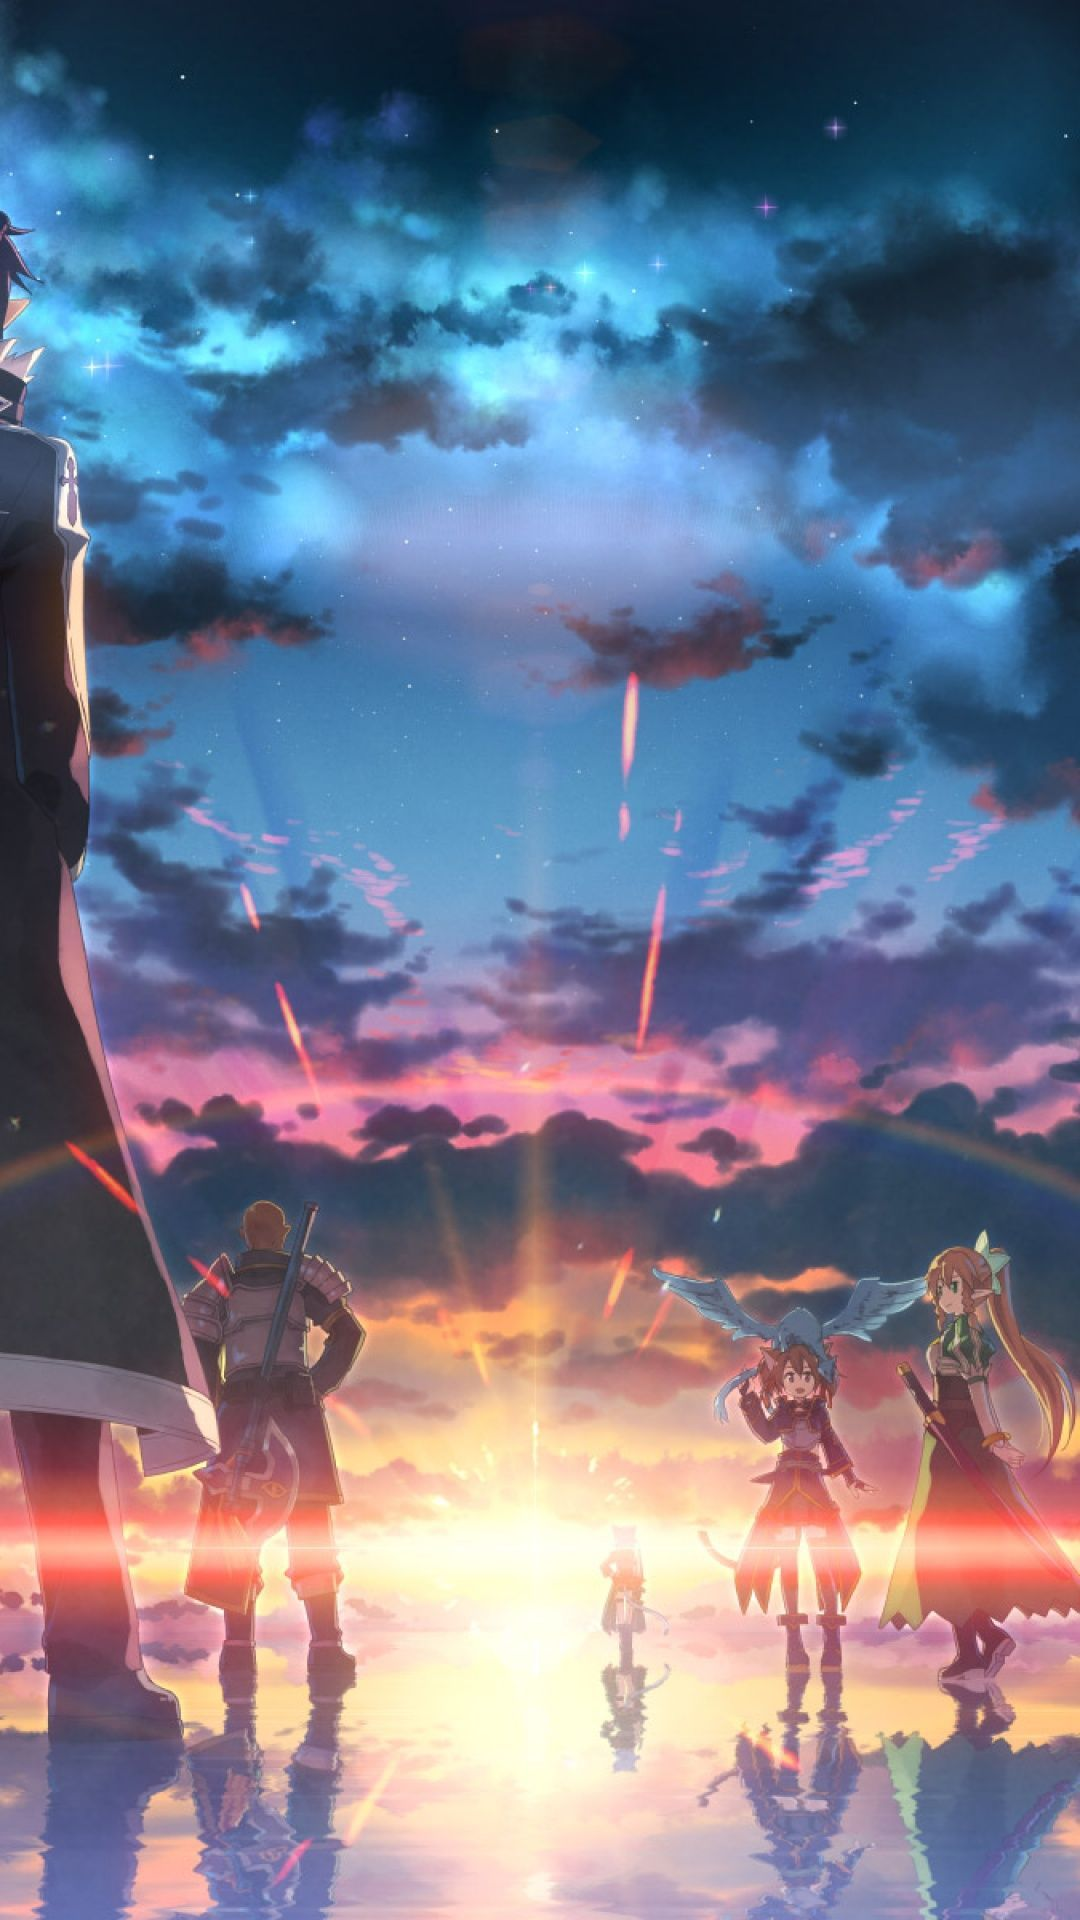 Sao Background Picture In 2020 Anime Wallpaper Phone Hd Anime Wallpapers Sword Art Online Season